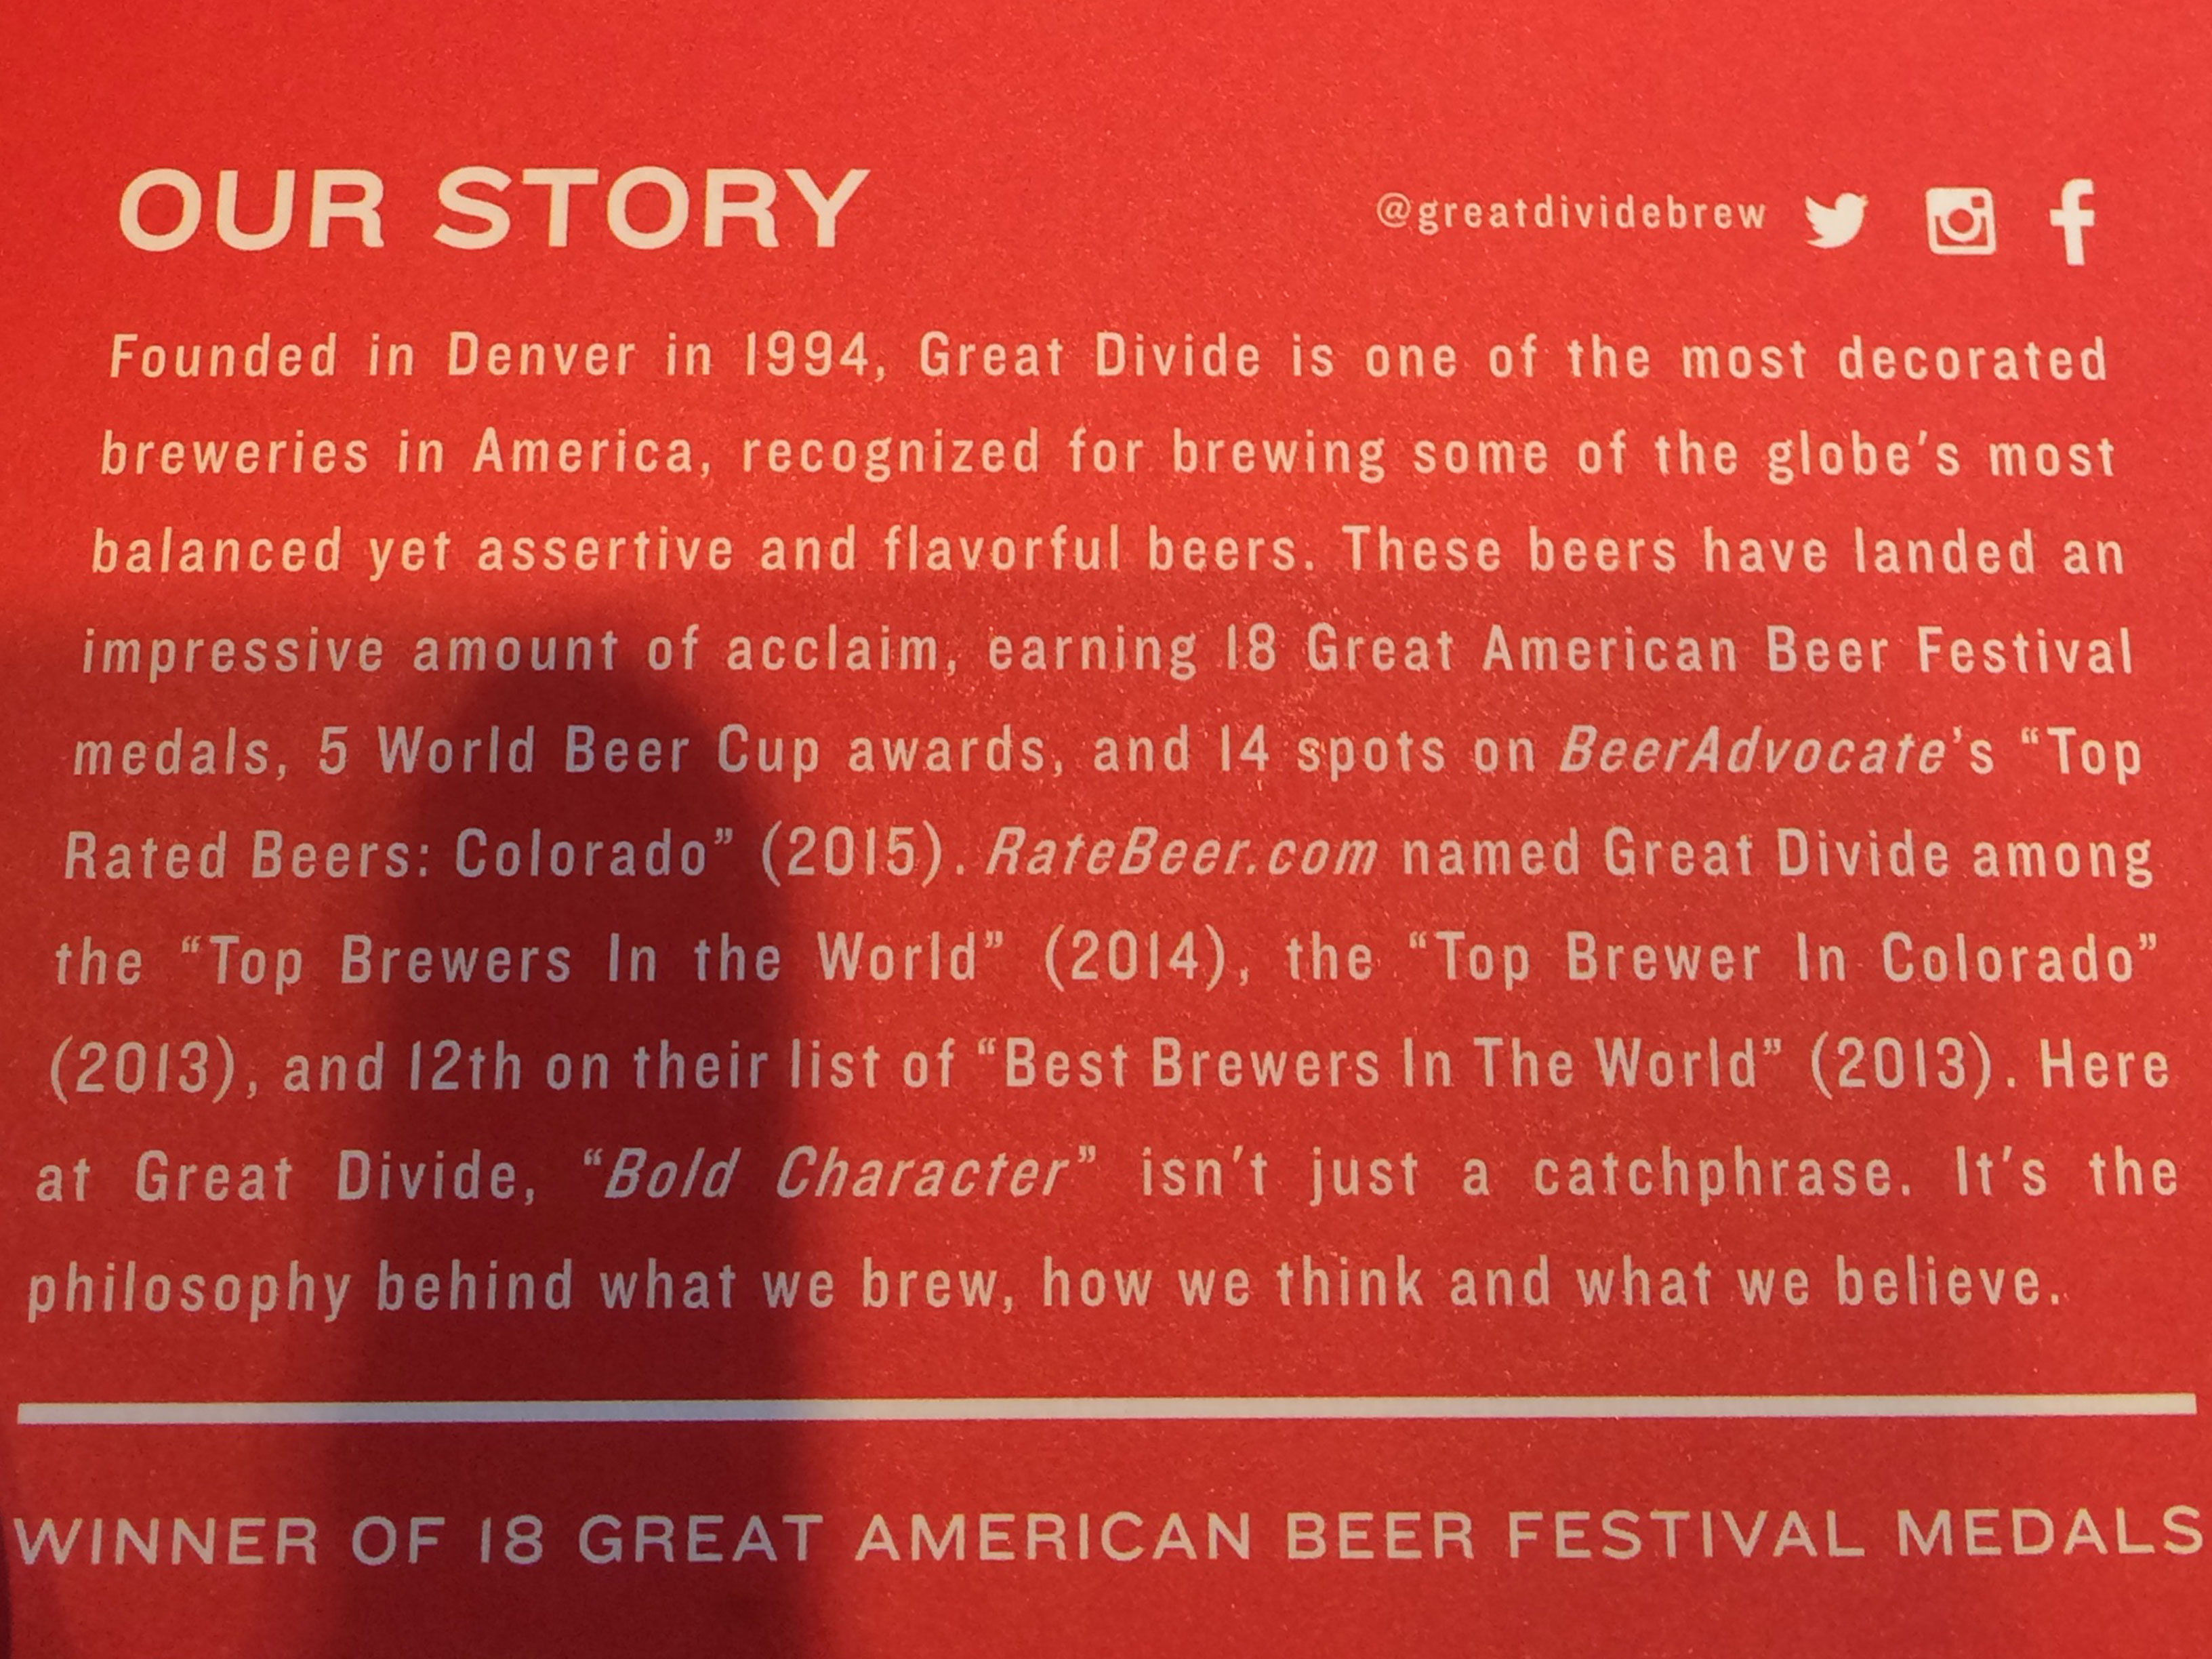 beer-the_great_divide-denver-co-microbrewery-bar-tf_tour__27_